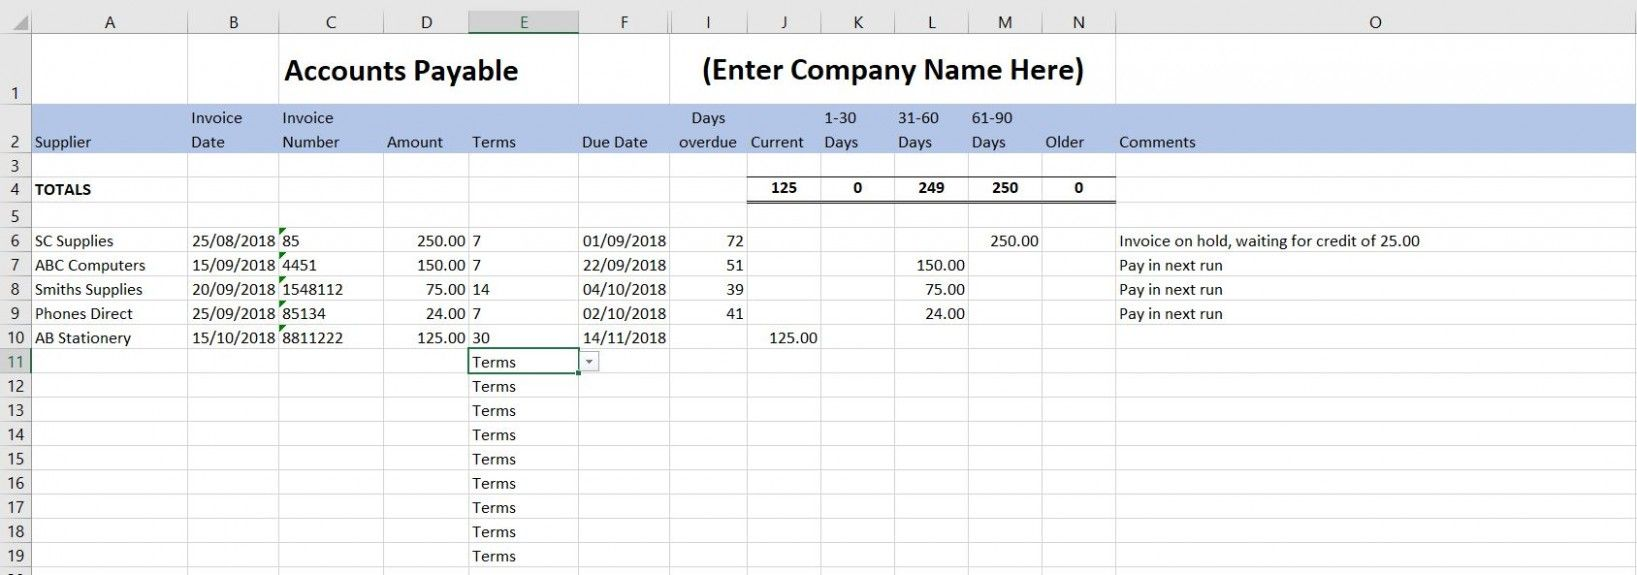 Free Excel Bookkeeping Templates 9 Accounts Spreadsheets Bookkeeping Templates Small Business Bookkeeping Small Business Accounting Free bookkeeping spreadsheets for self